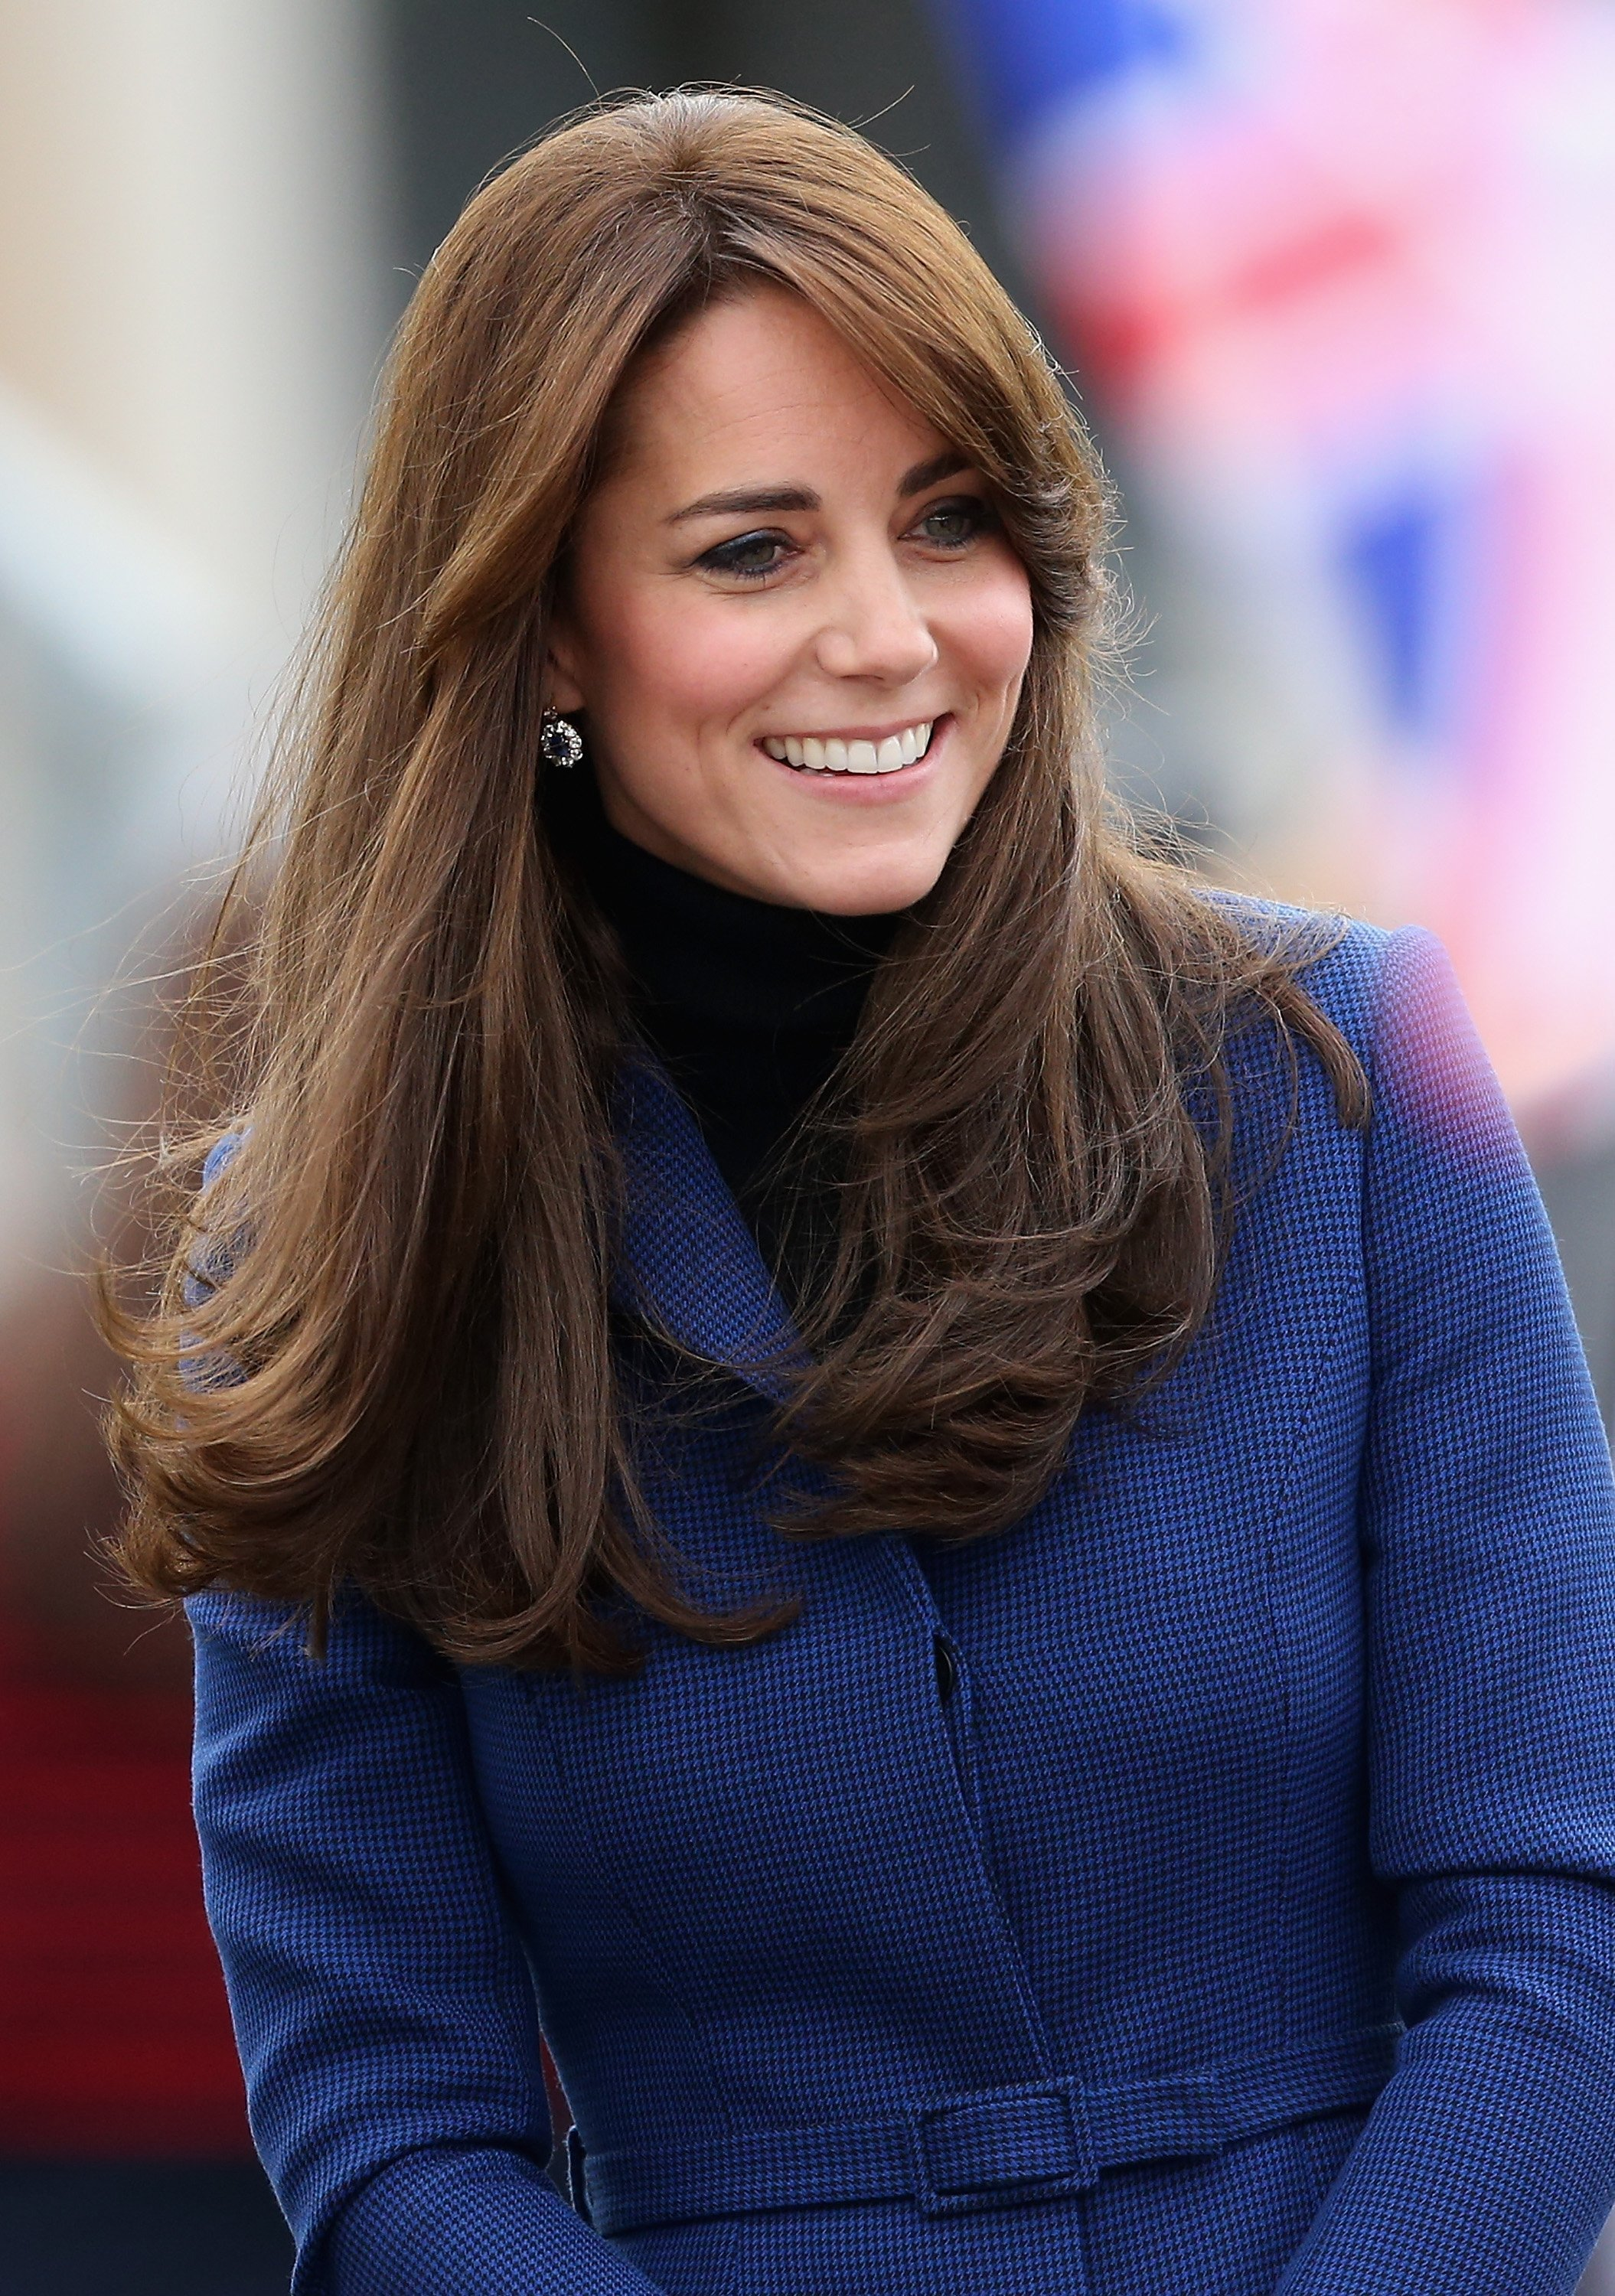 La Duchesse de Cambridge. l Source: Getty Images